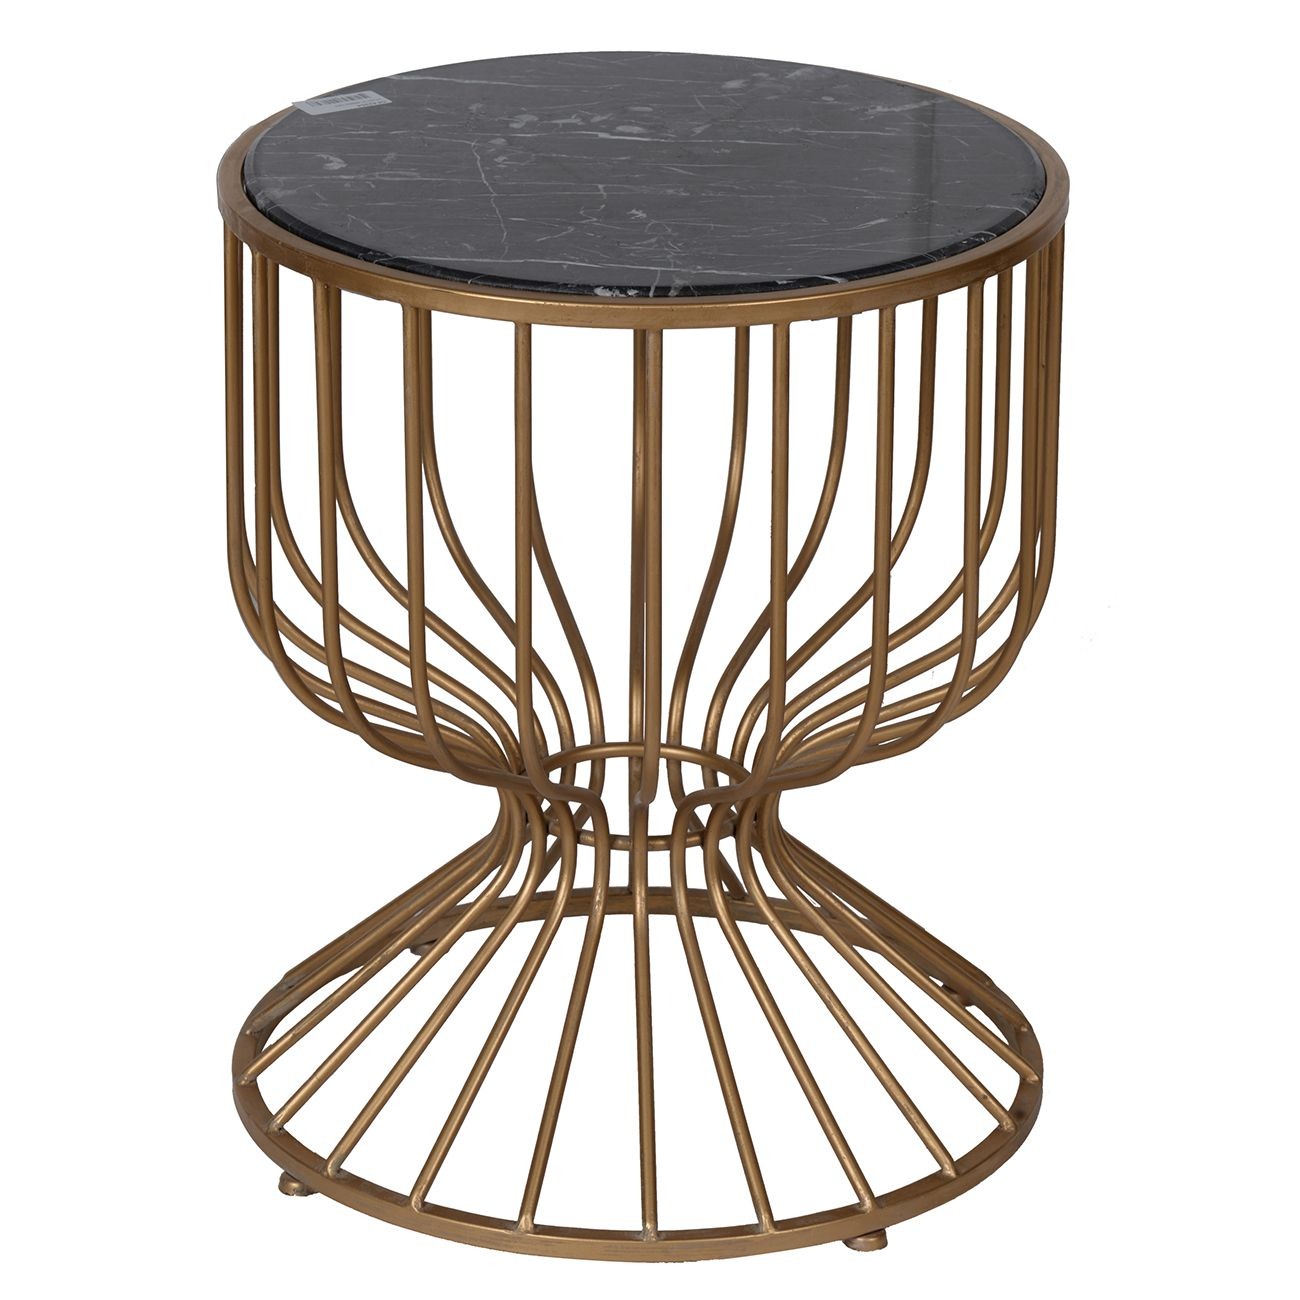 Aub home table df casepack price